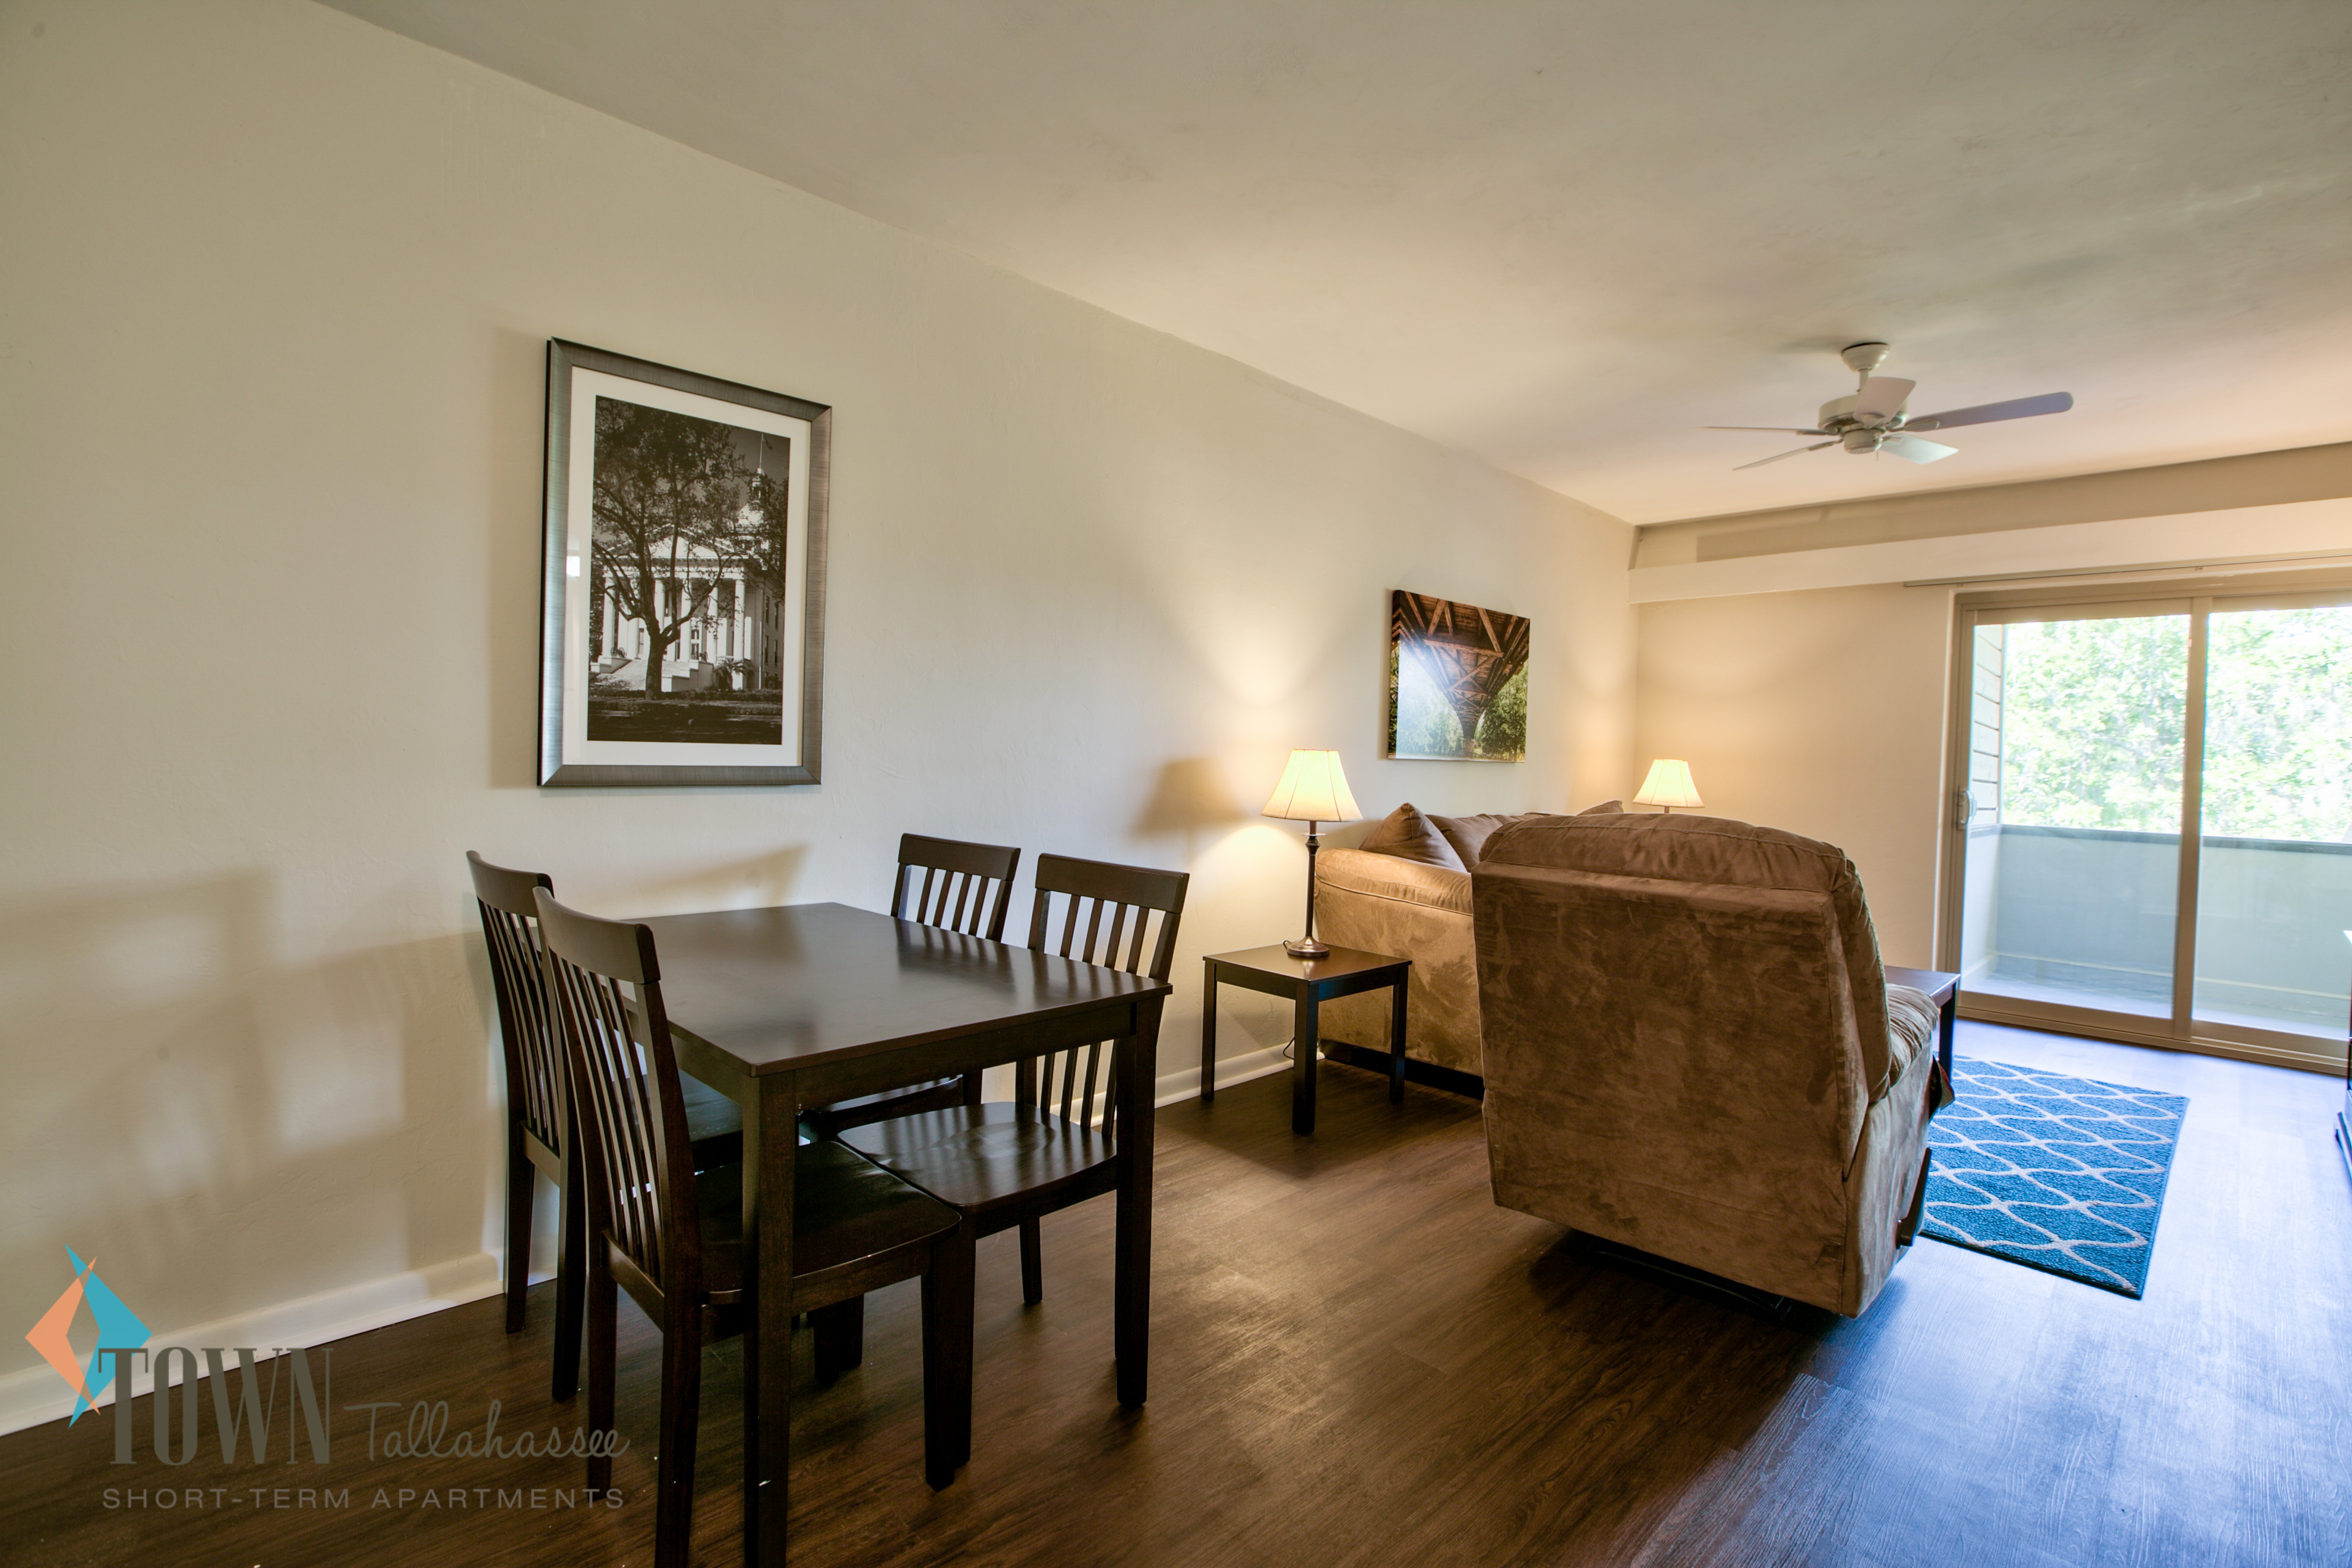 Exceptionnel Town Tallahassee Short Term Rental